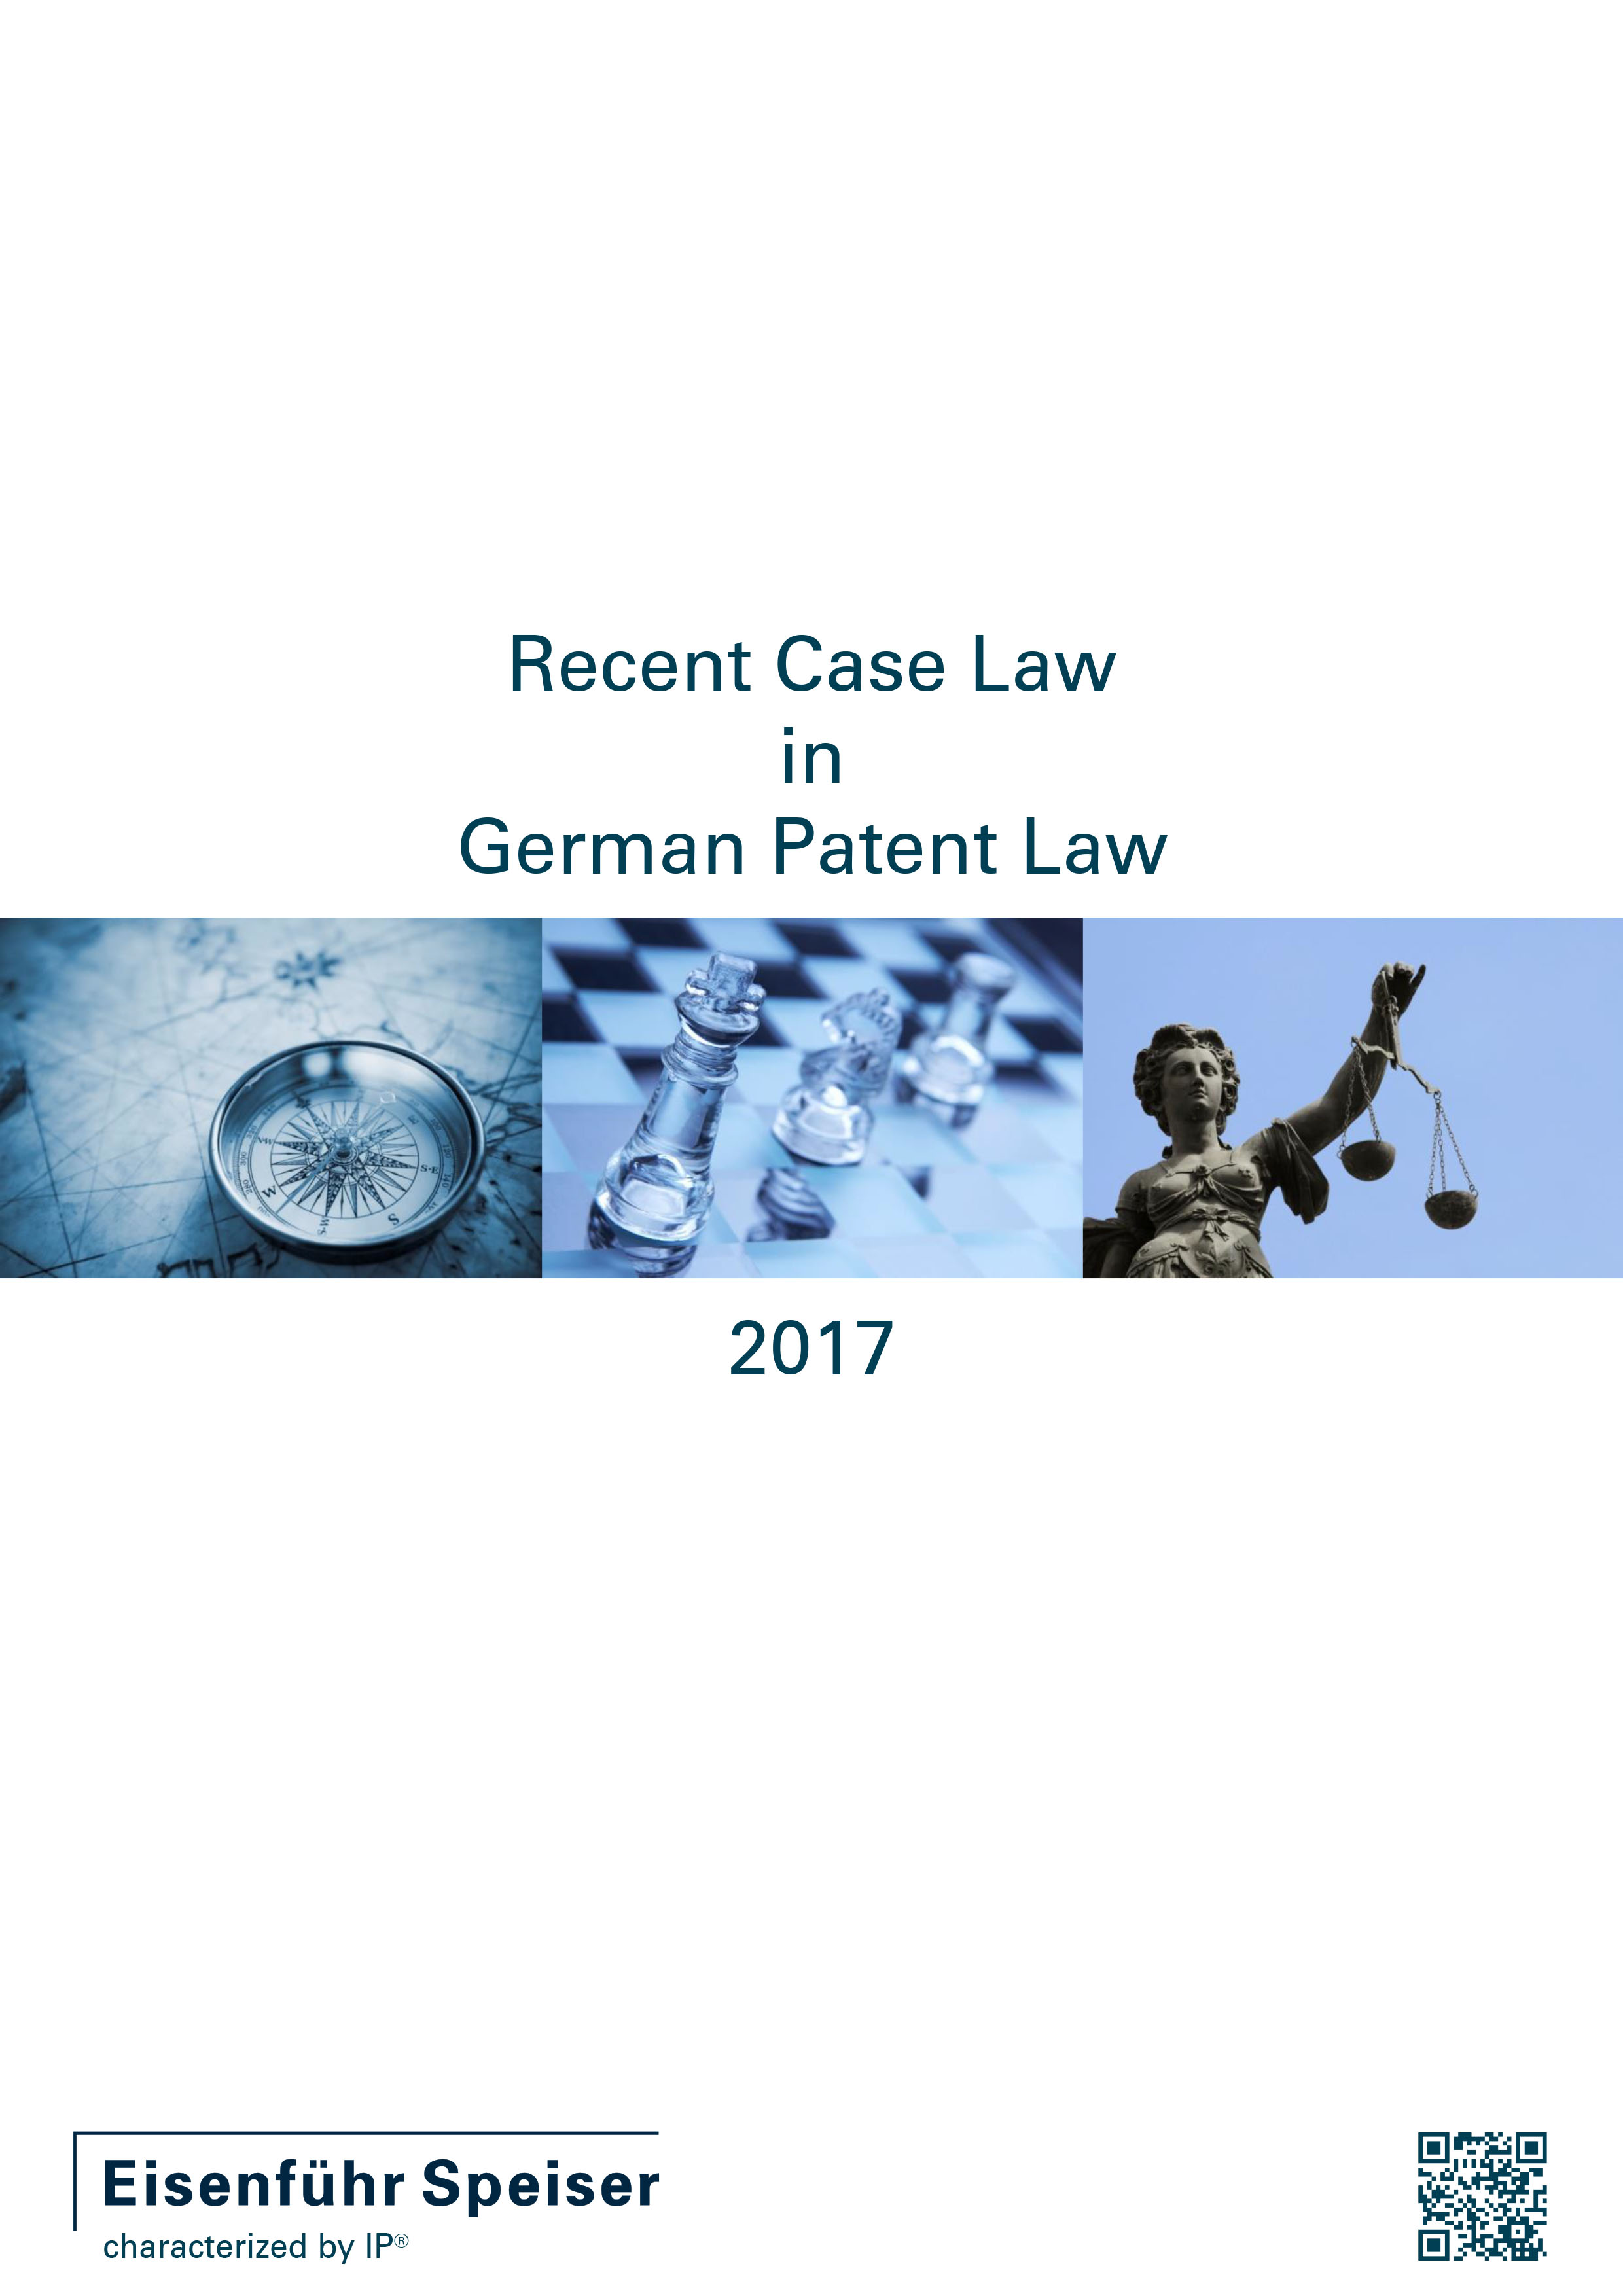 Recent Case Law in German Patent Law 2017